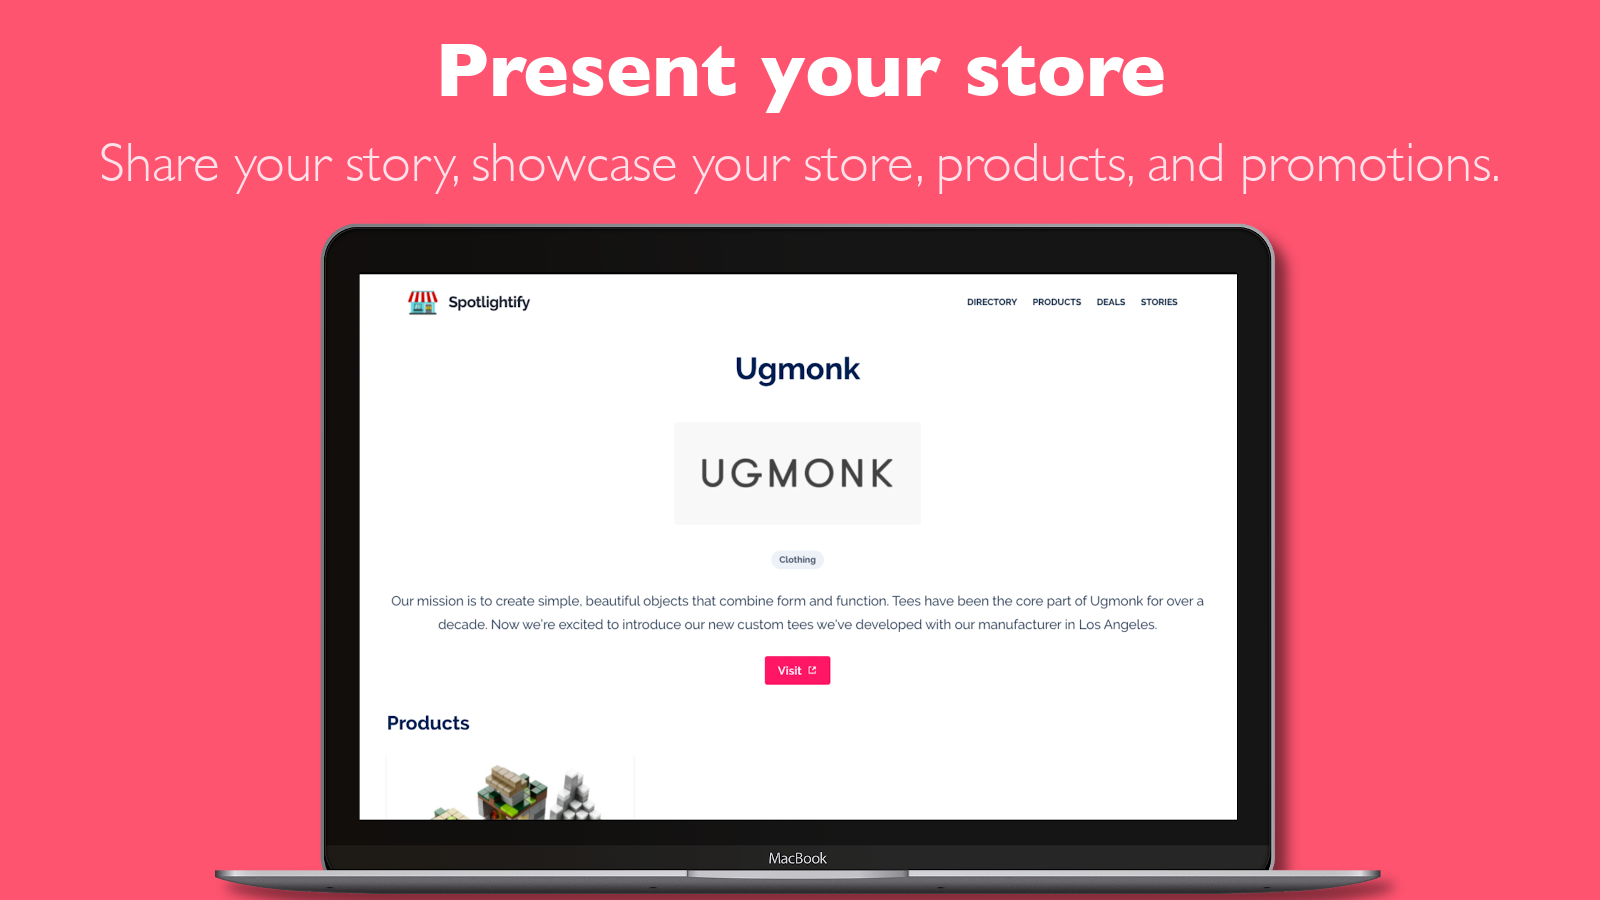 Share your story, present your store, products, and promotions.